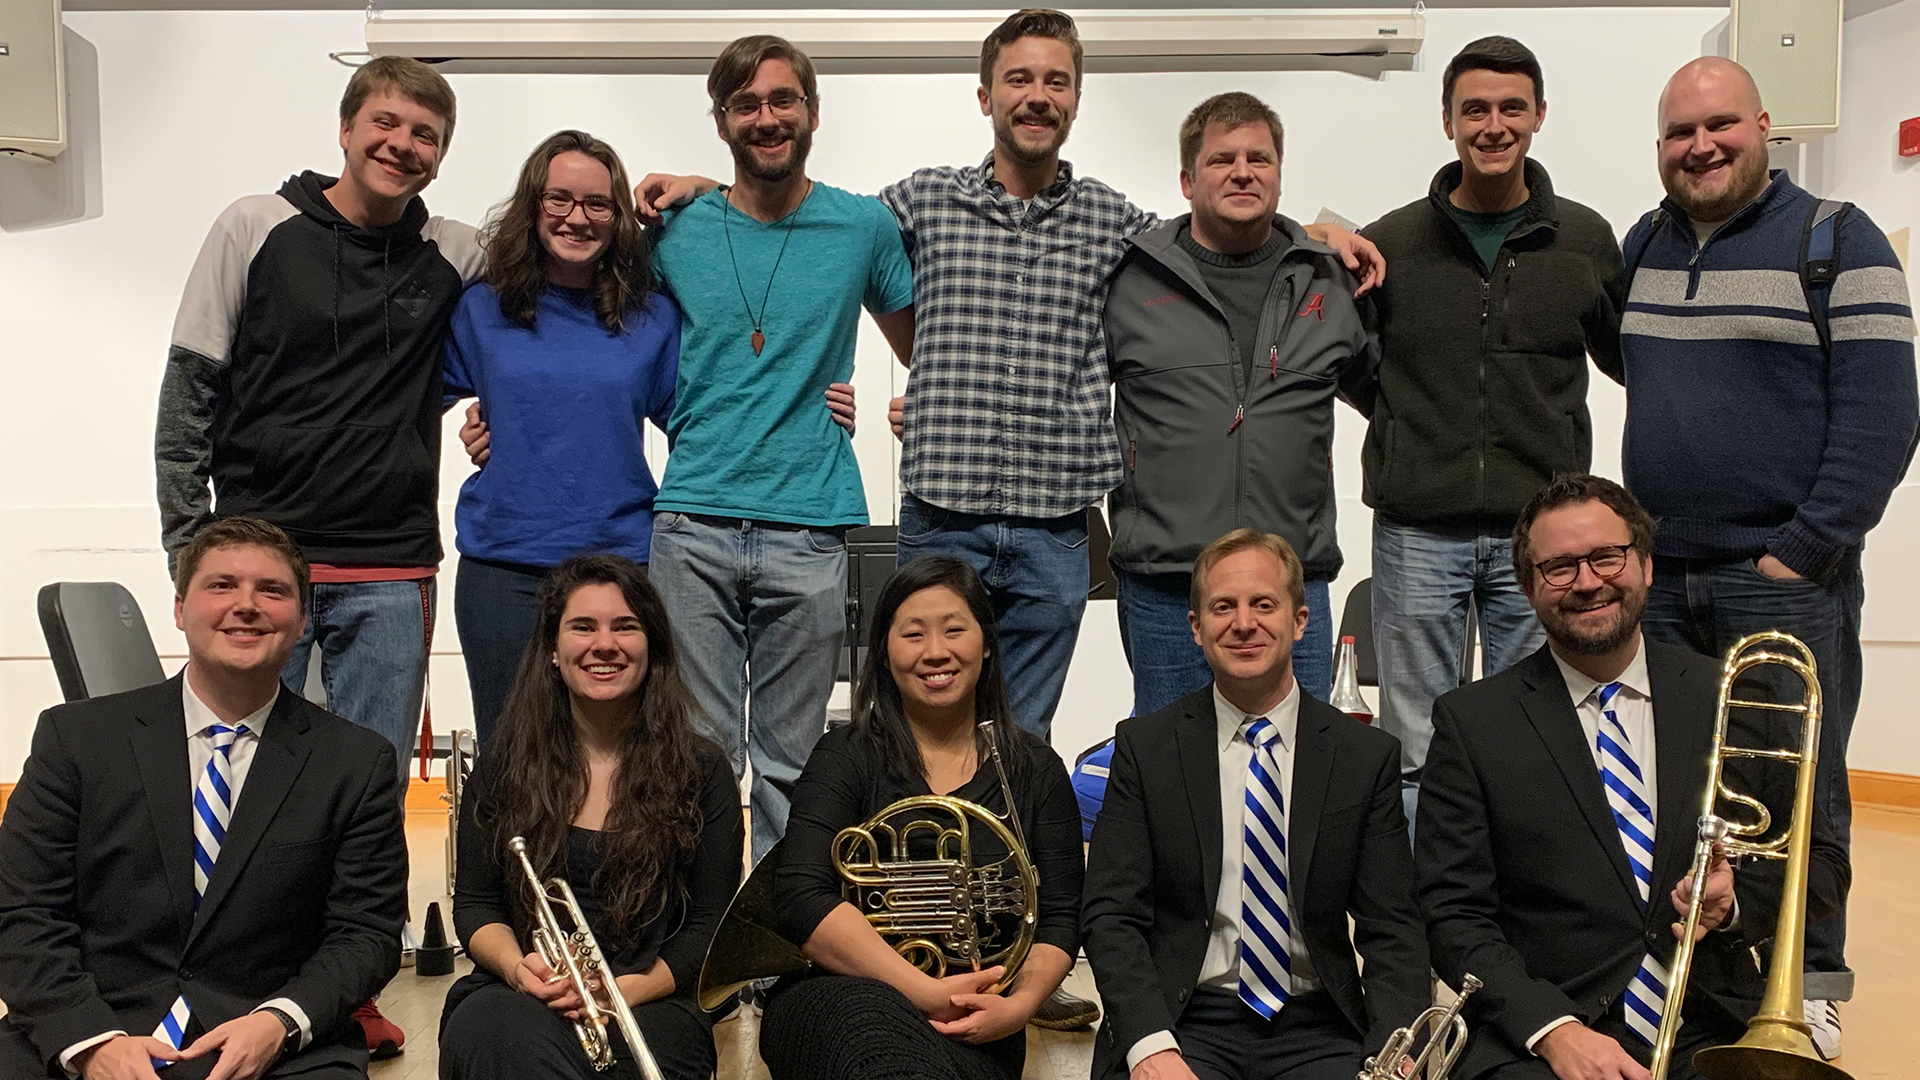 University of Kentucky Brass Quintet visiting University of Alabama students and faculty in 2019.